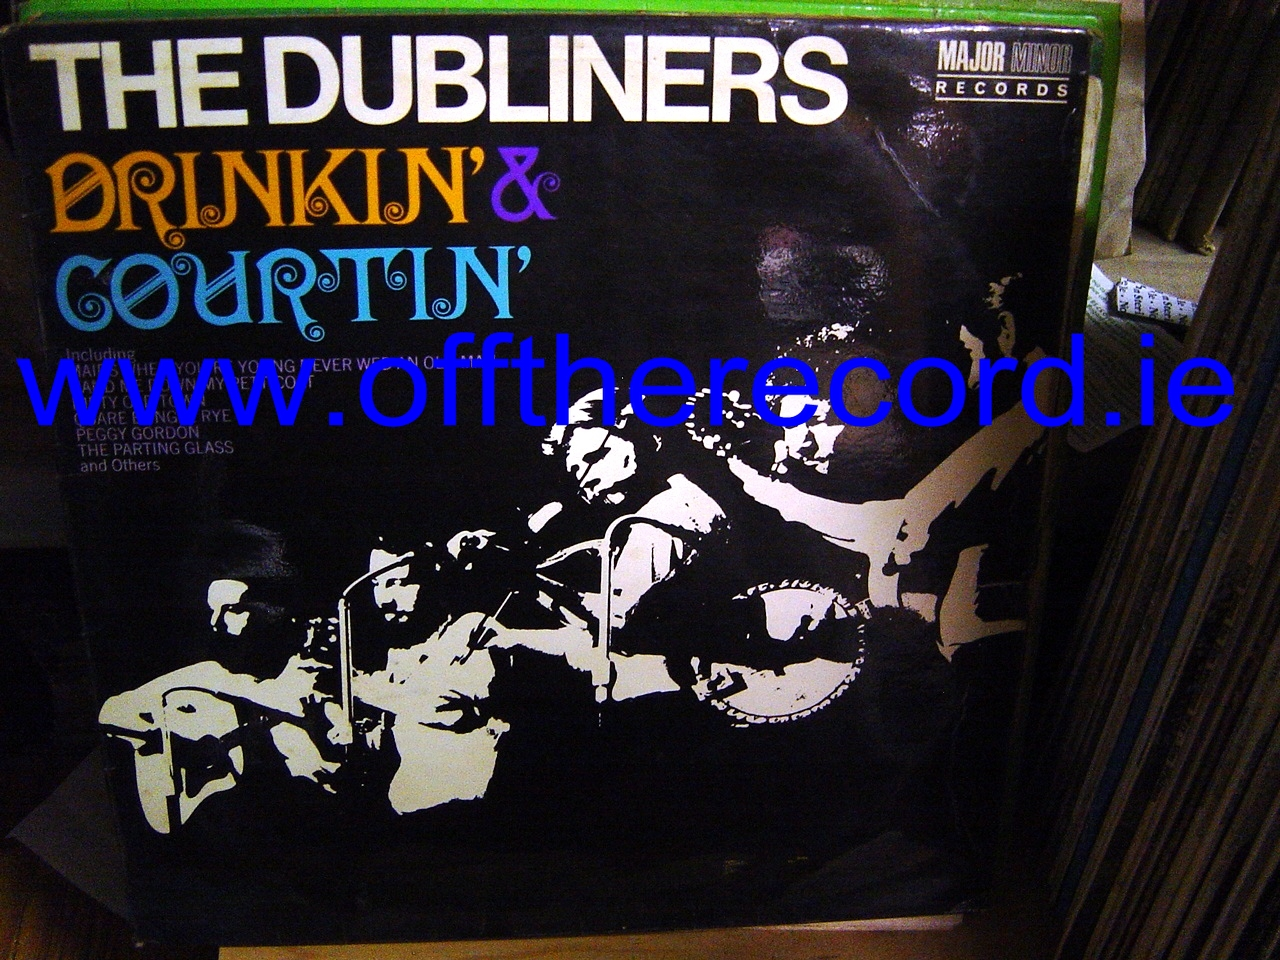 The Dubliners - Drinkin' & Courtin' - Major Minor Records